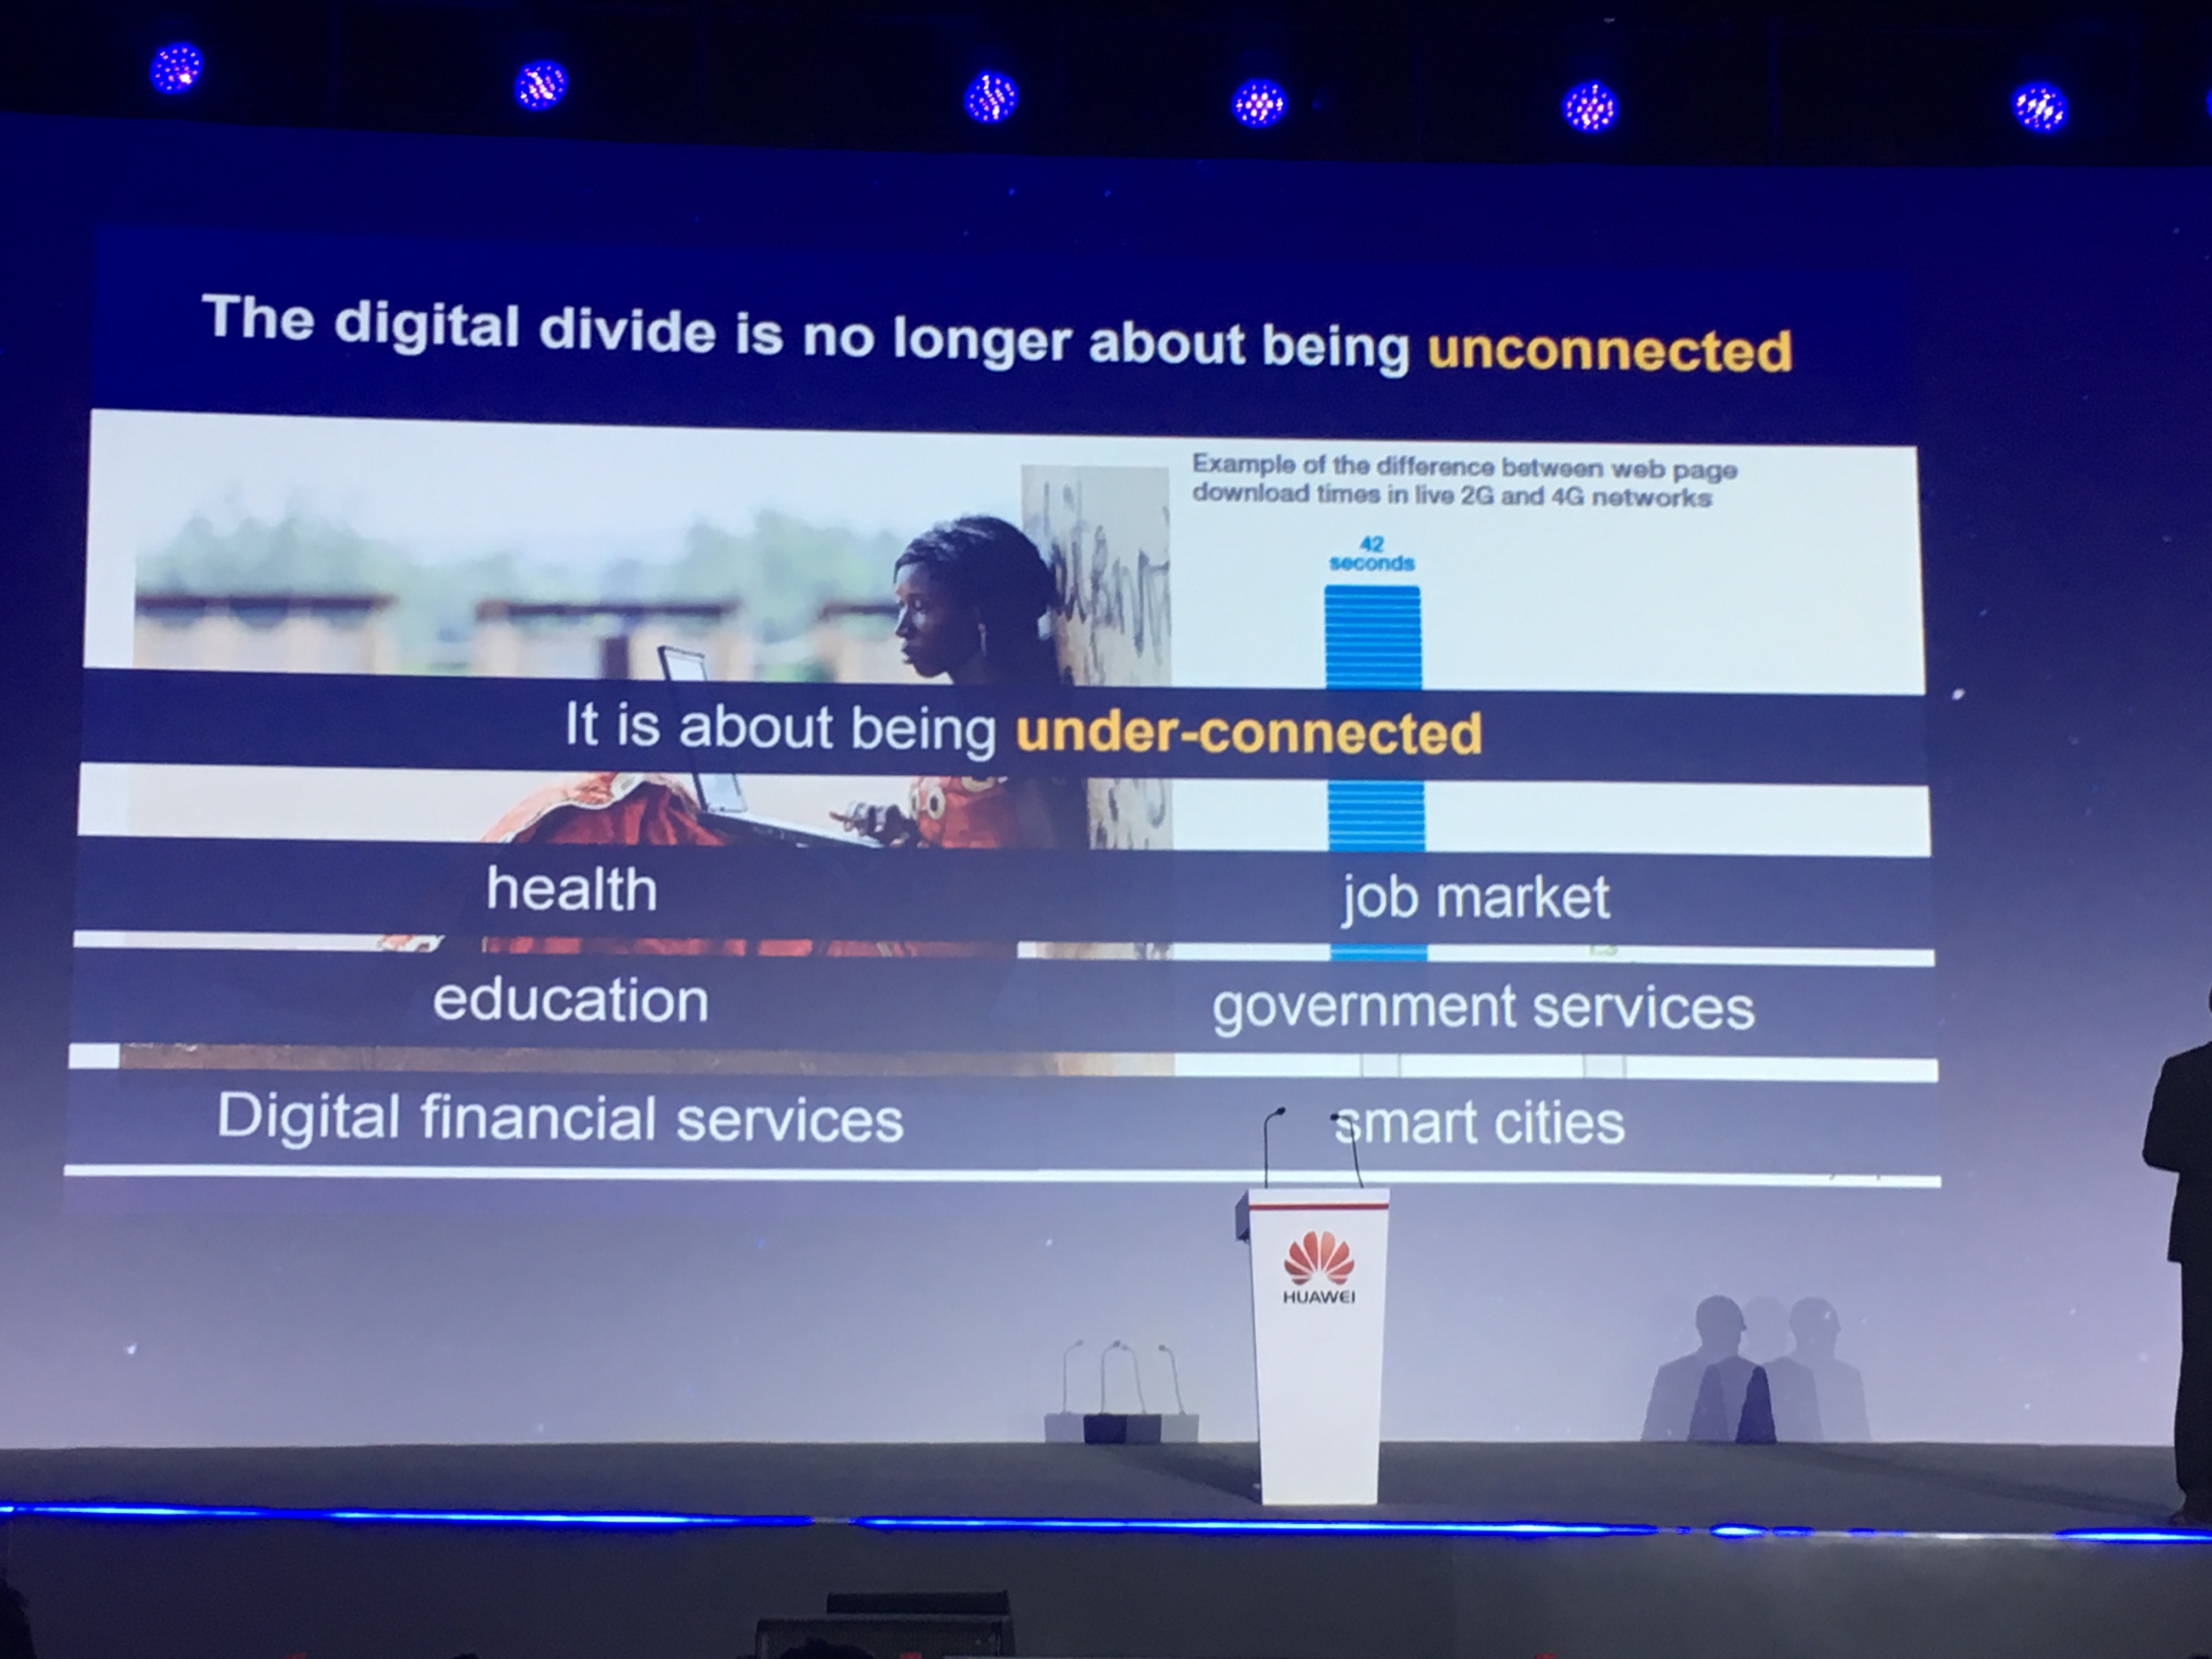 #Huawei works to end the #digitaldivide by #recycling #infrastructure for #rural #ultrabroadband